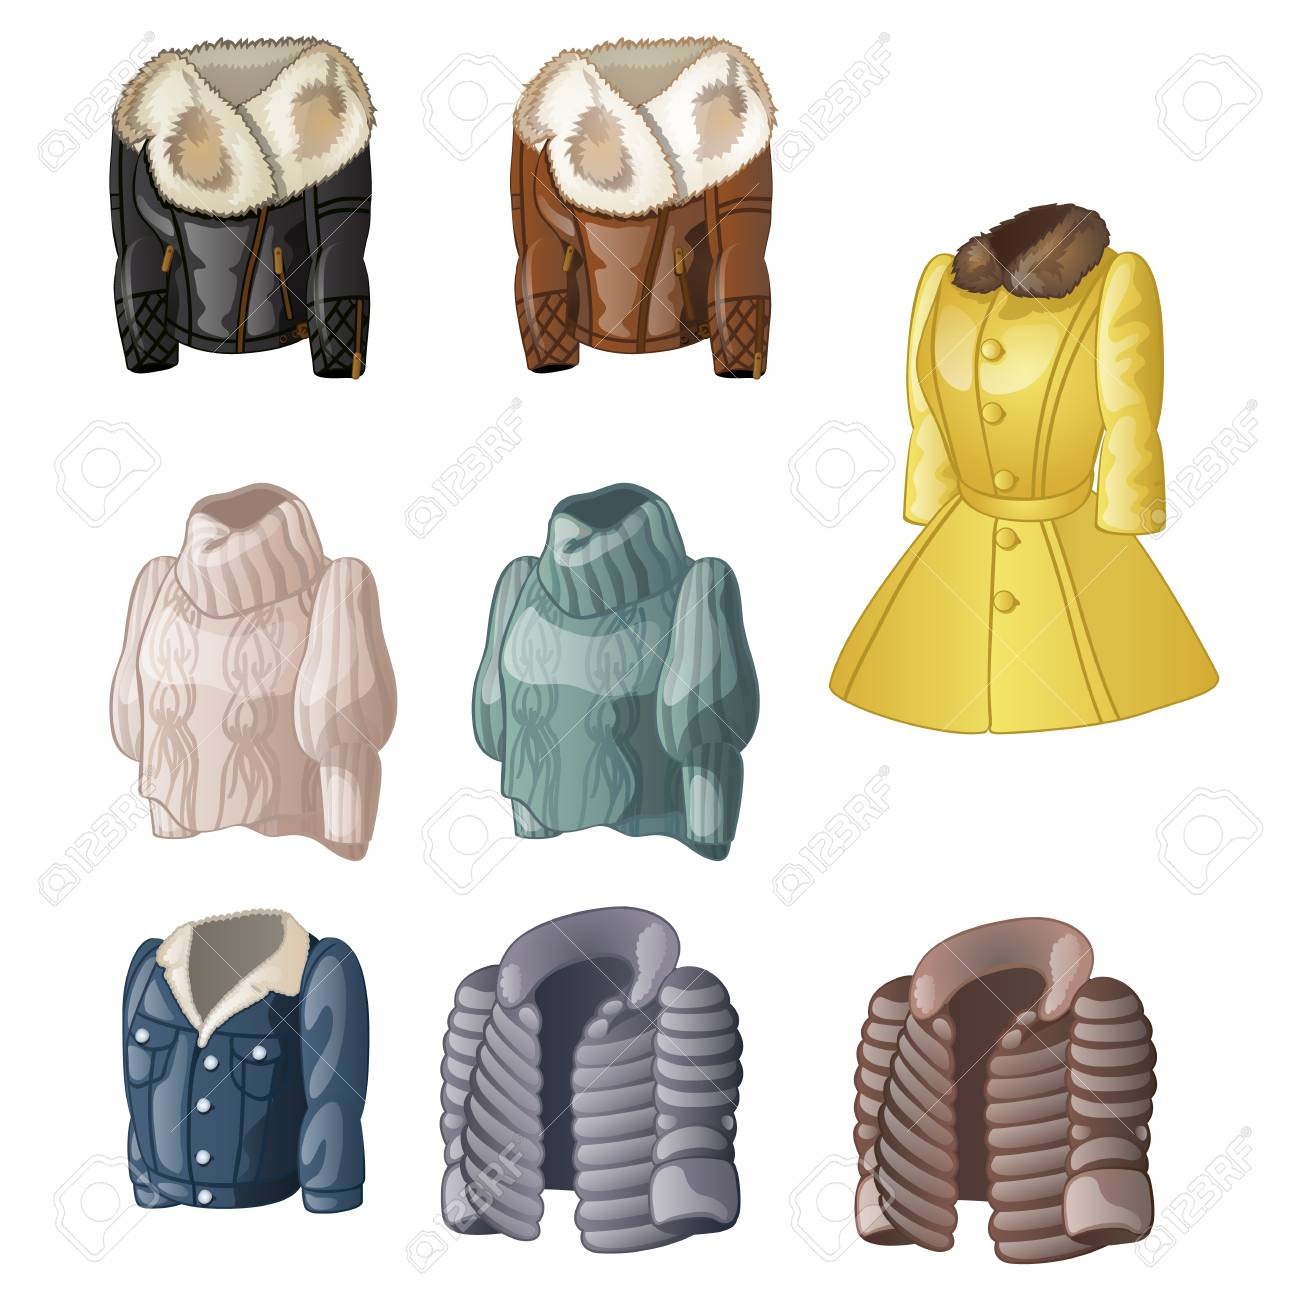 a6a05a0572a6 Set Of Womens Animated Clothing Isolated On A White Background ...